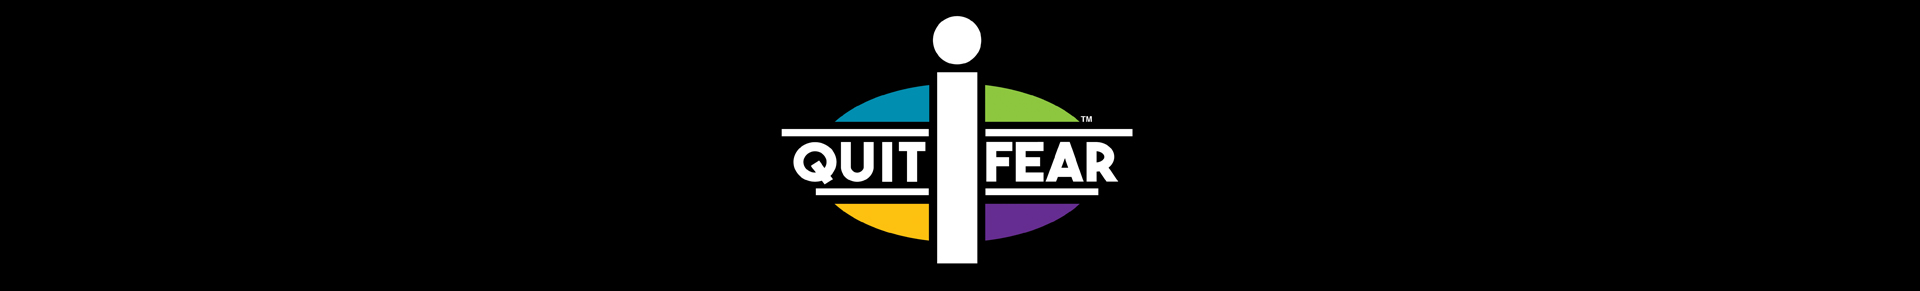 I Quit Fear